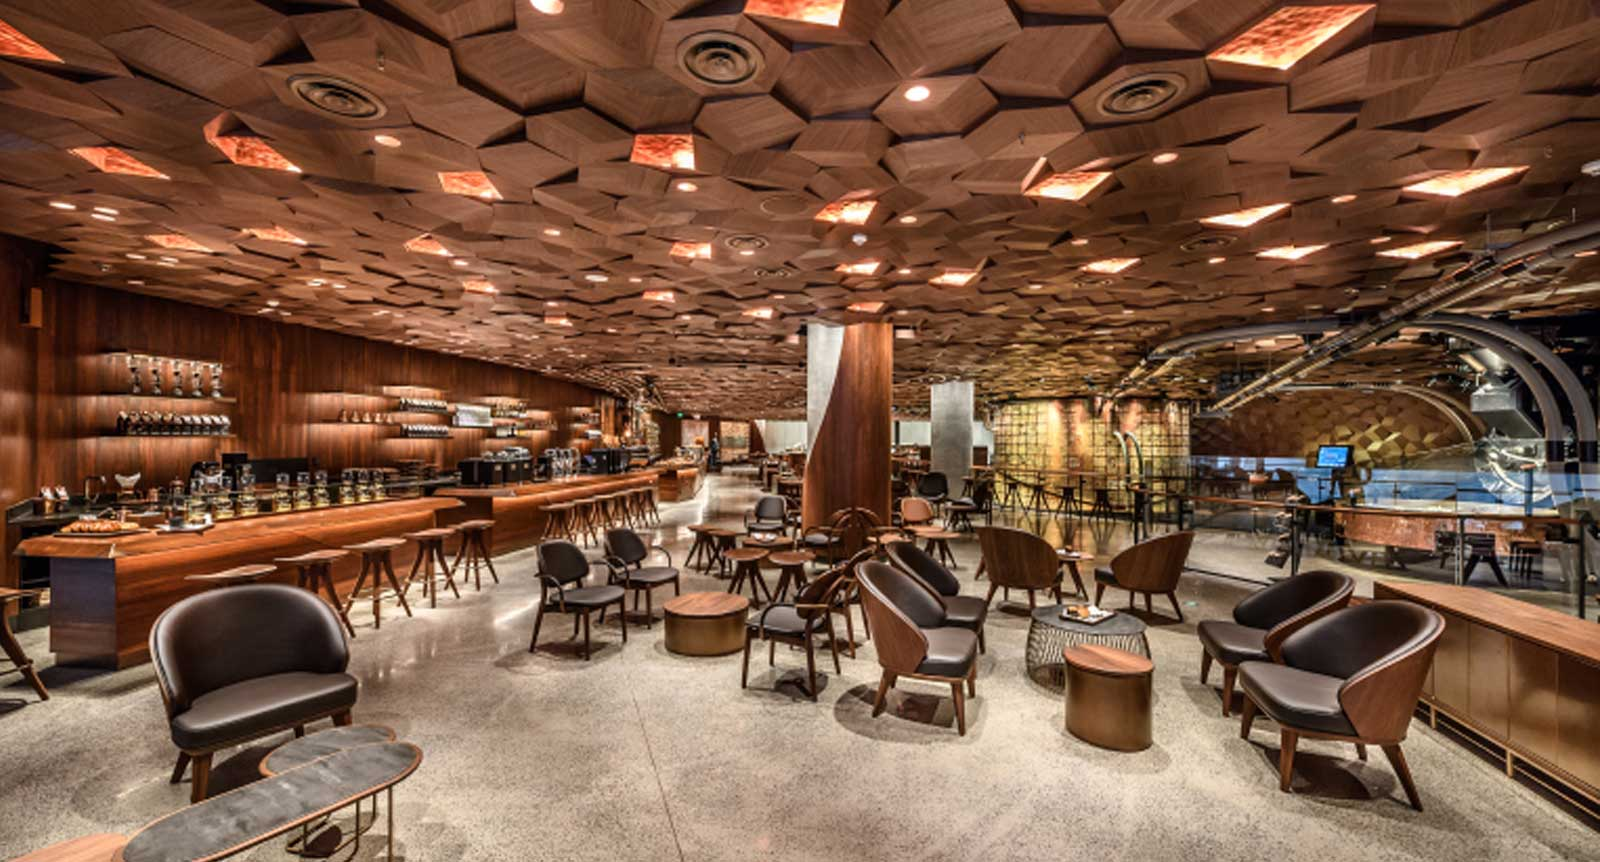 Industry News - 10,000 Walnut Veneer Ceiling Tiles Make Up World